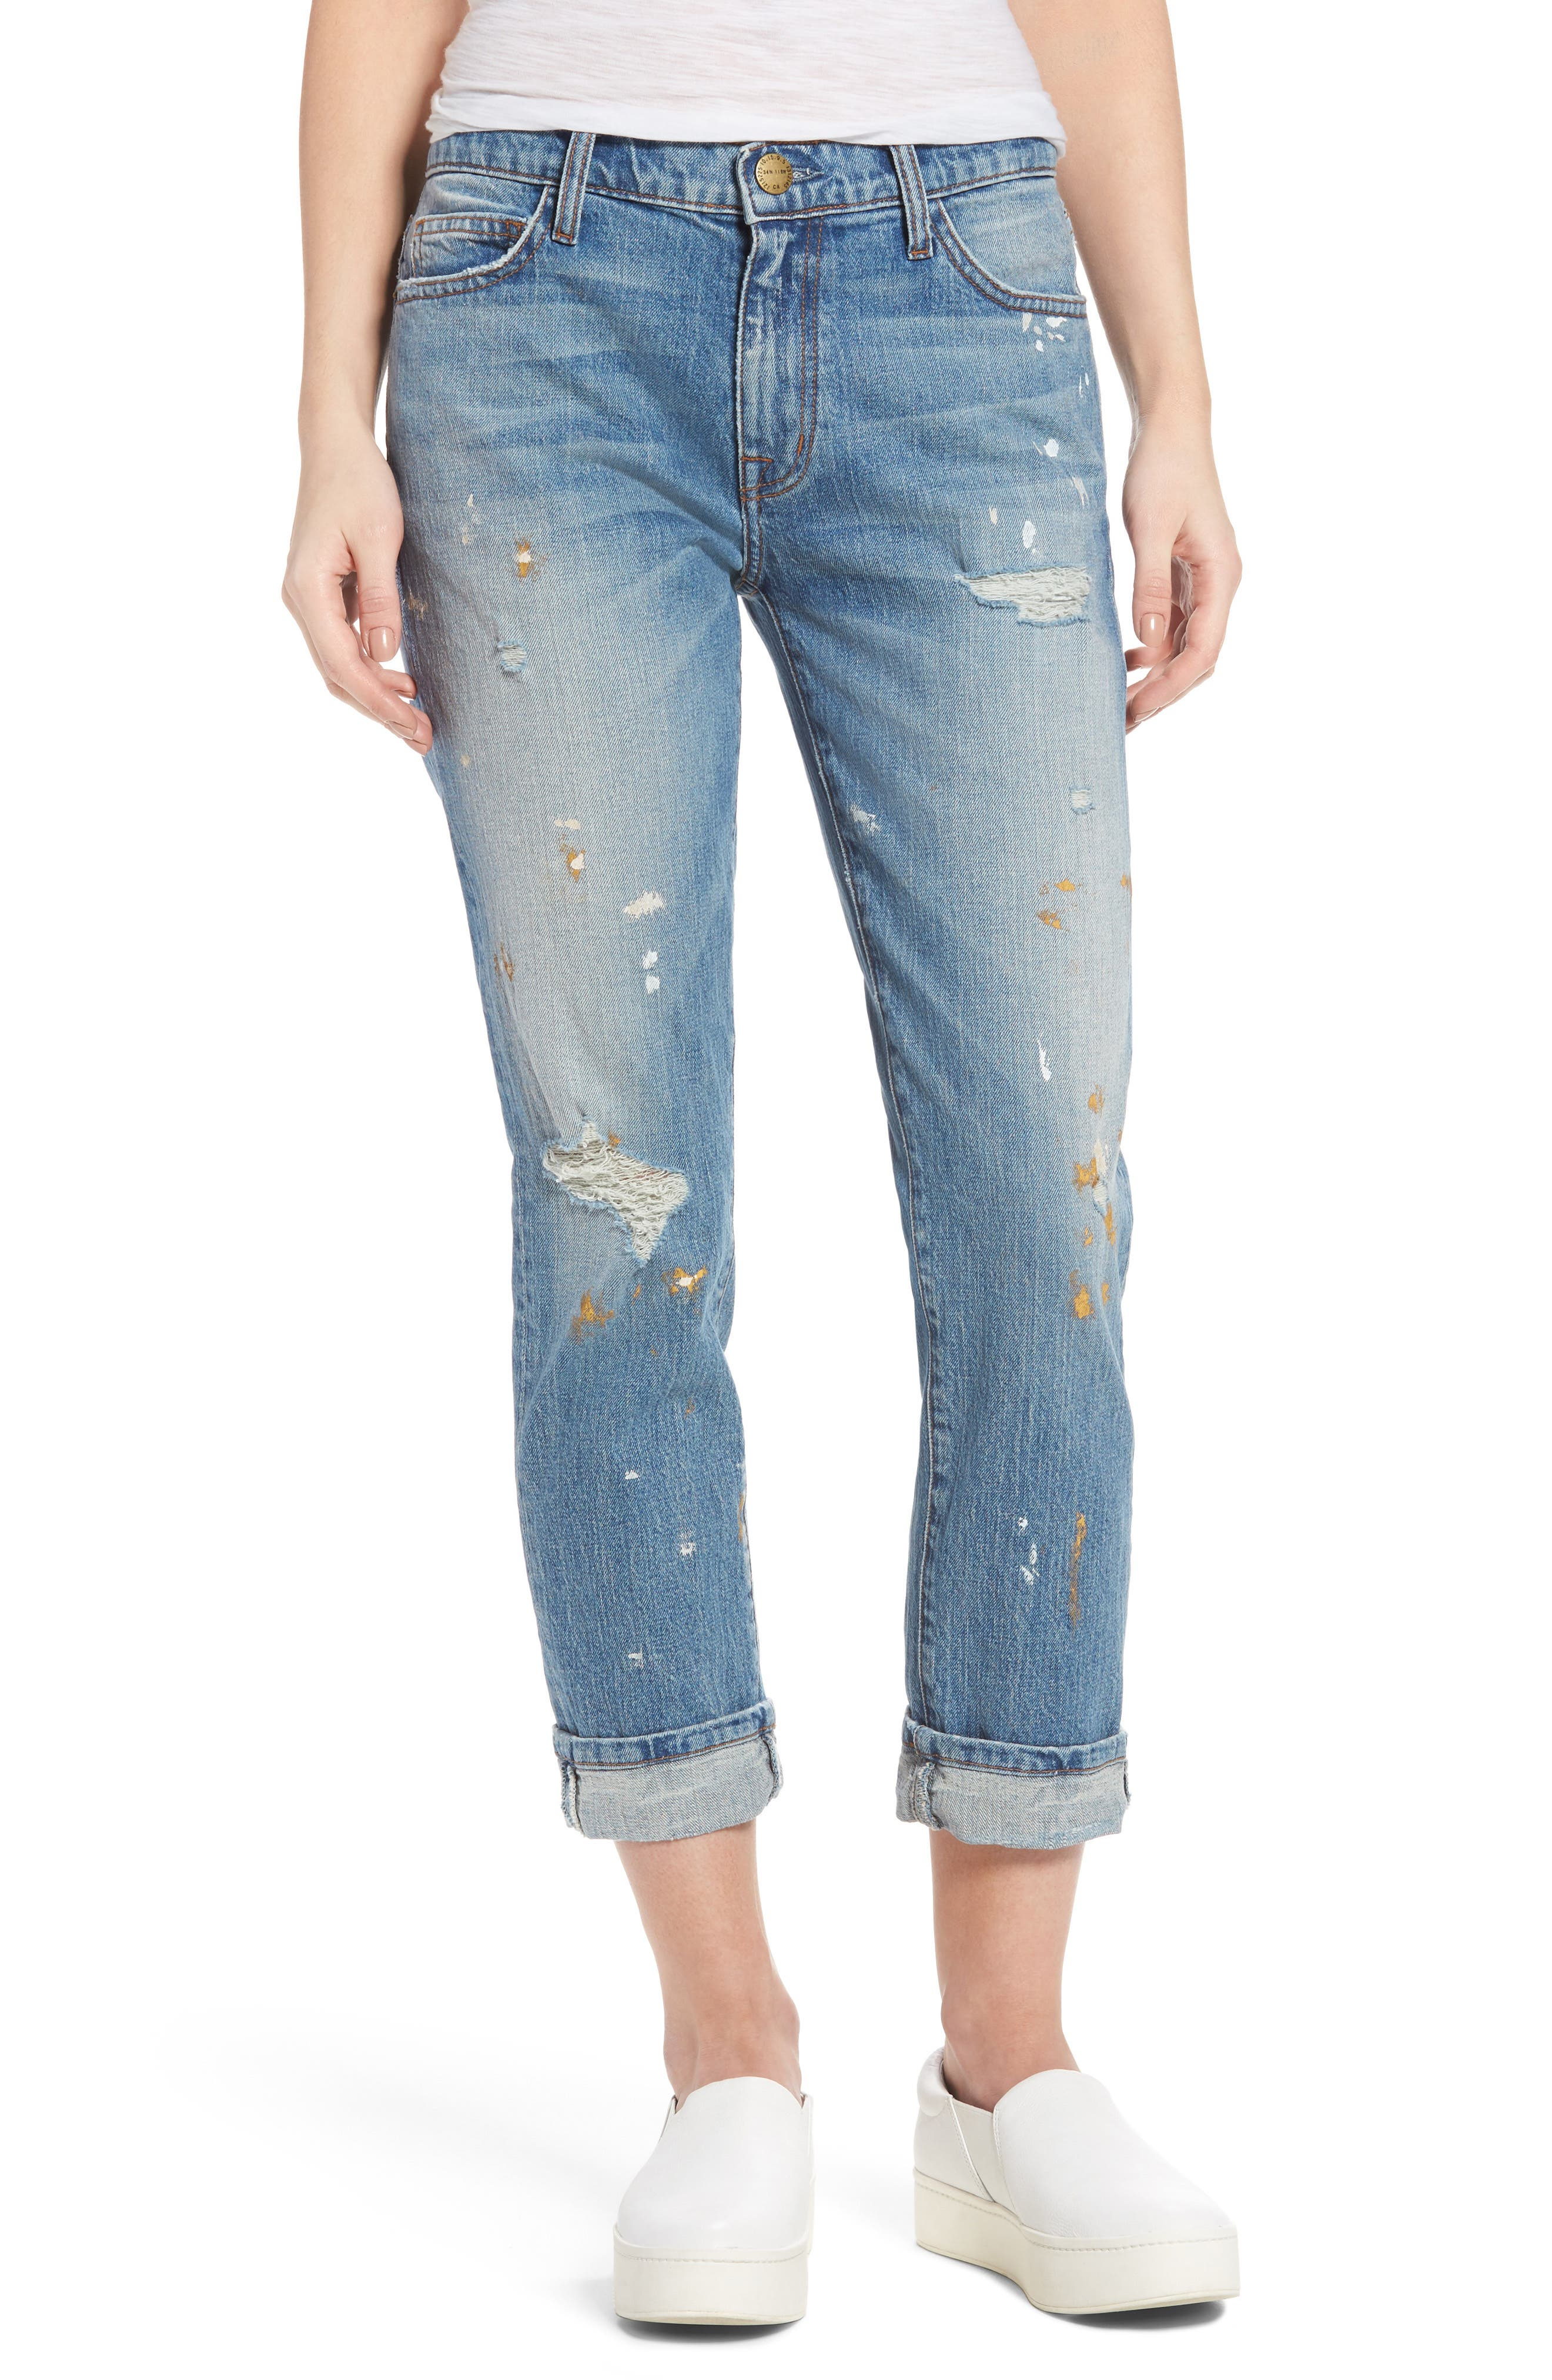 Fling Distressed Rolled Jeans,                         Main,                         color, Bolero